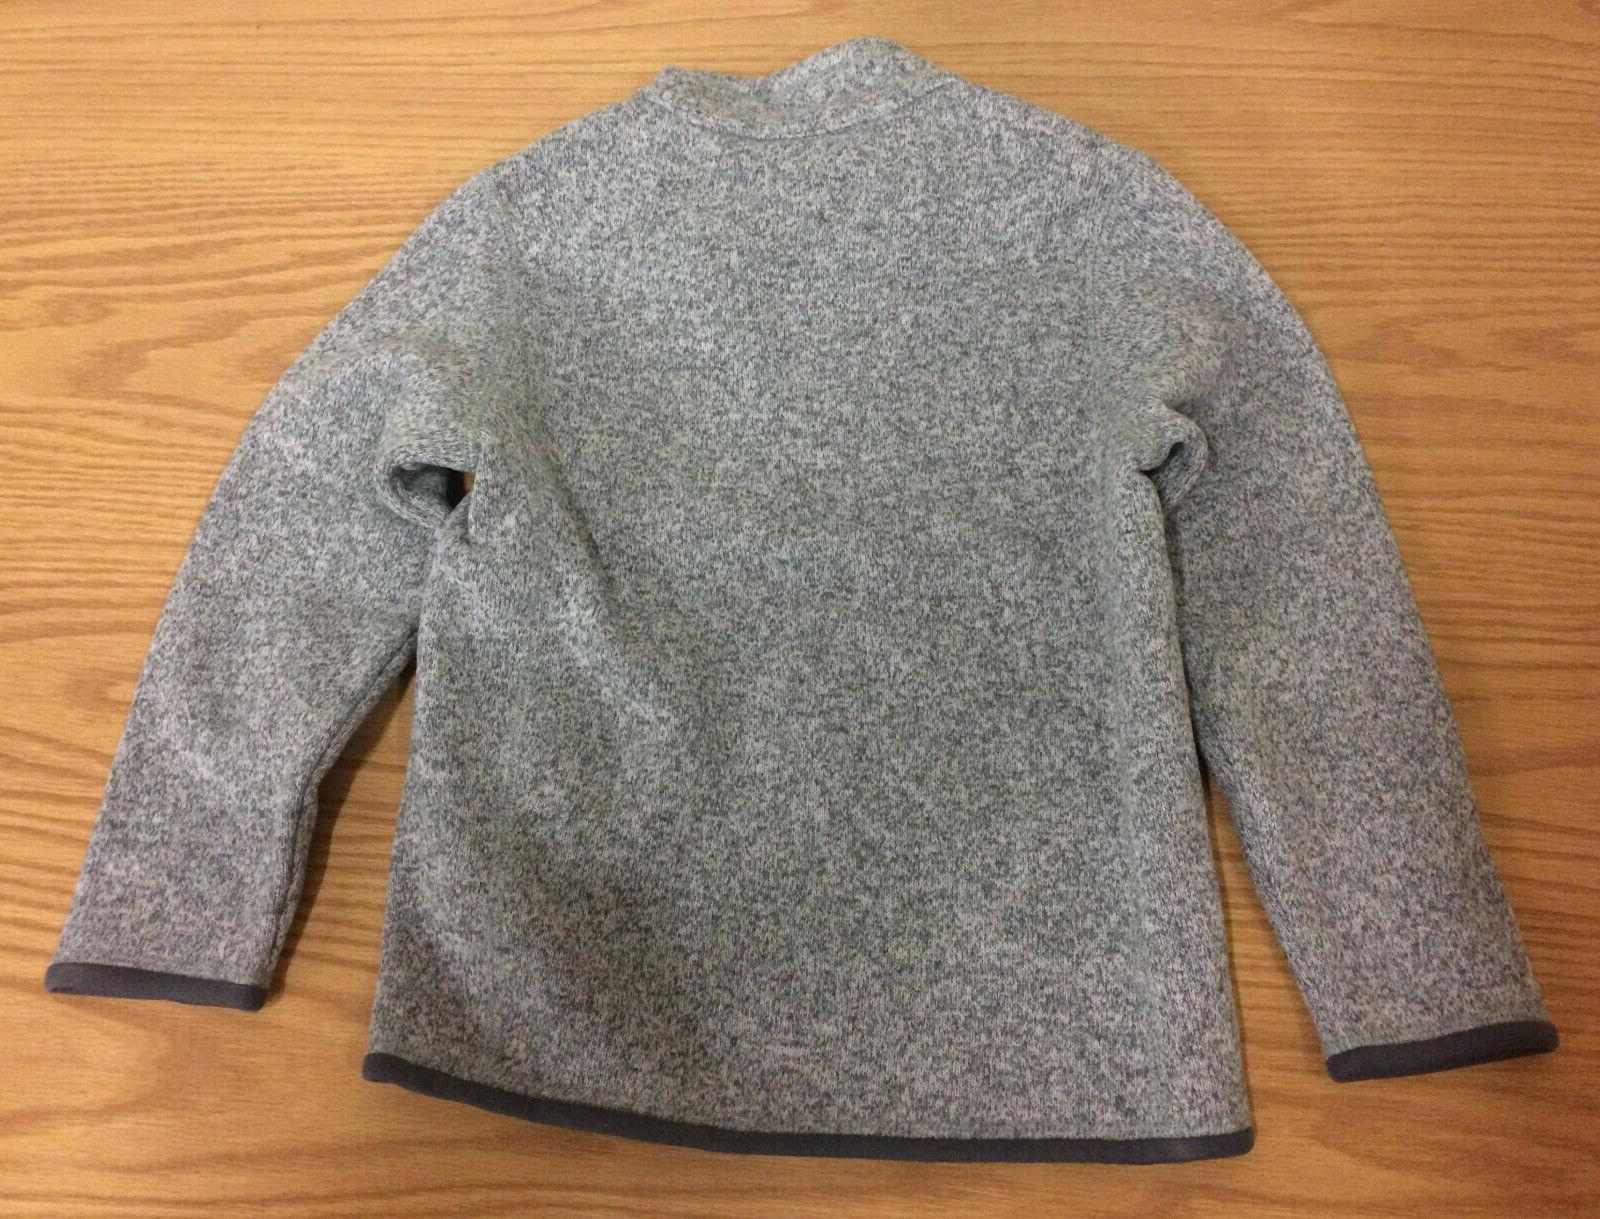 PATAGONIA BOYS' BETTER SWEATER 1/4 STONEWASH SMALL 7-8 NEW WITH CLOTHING